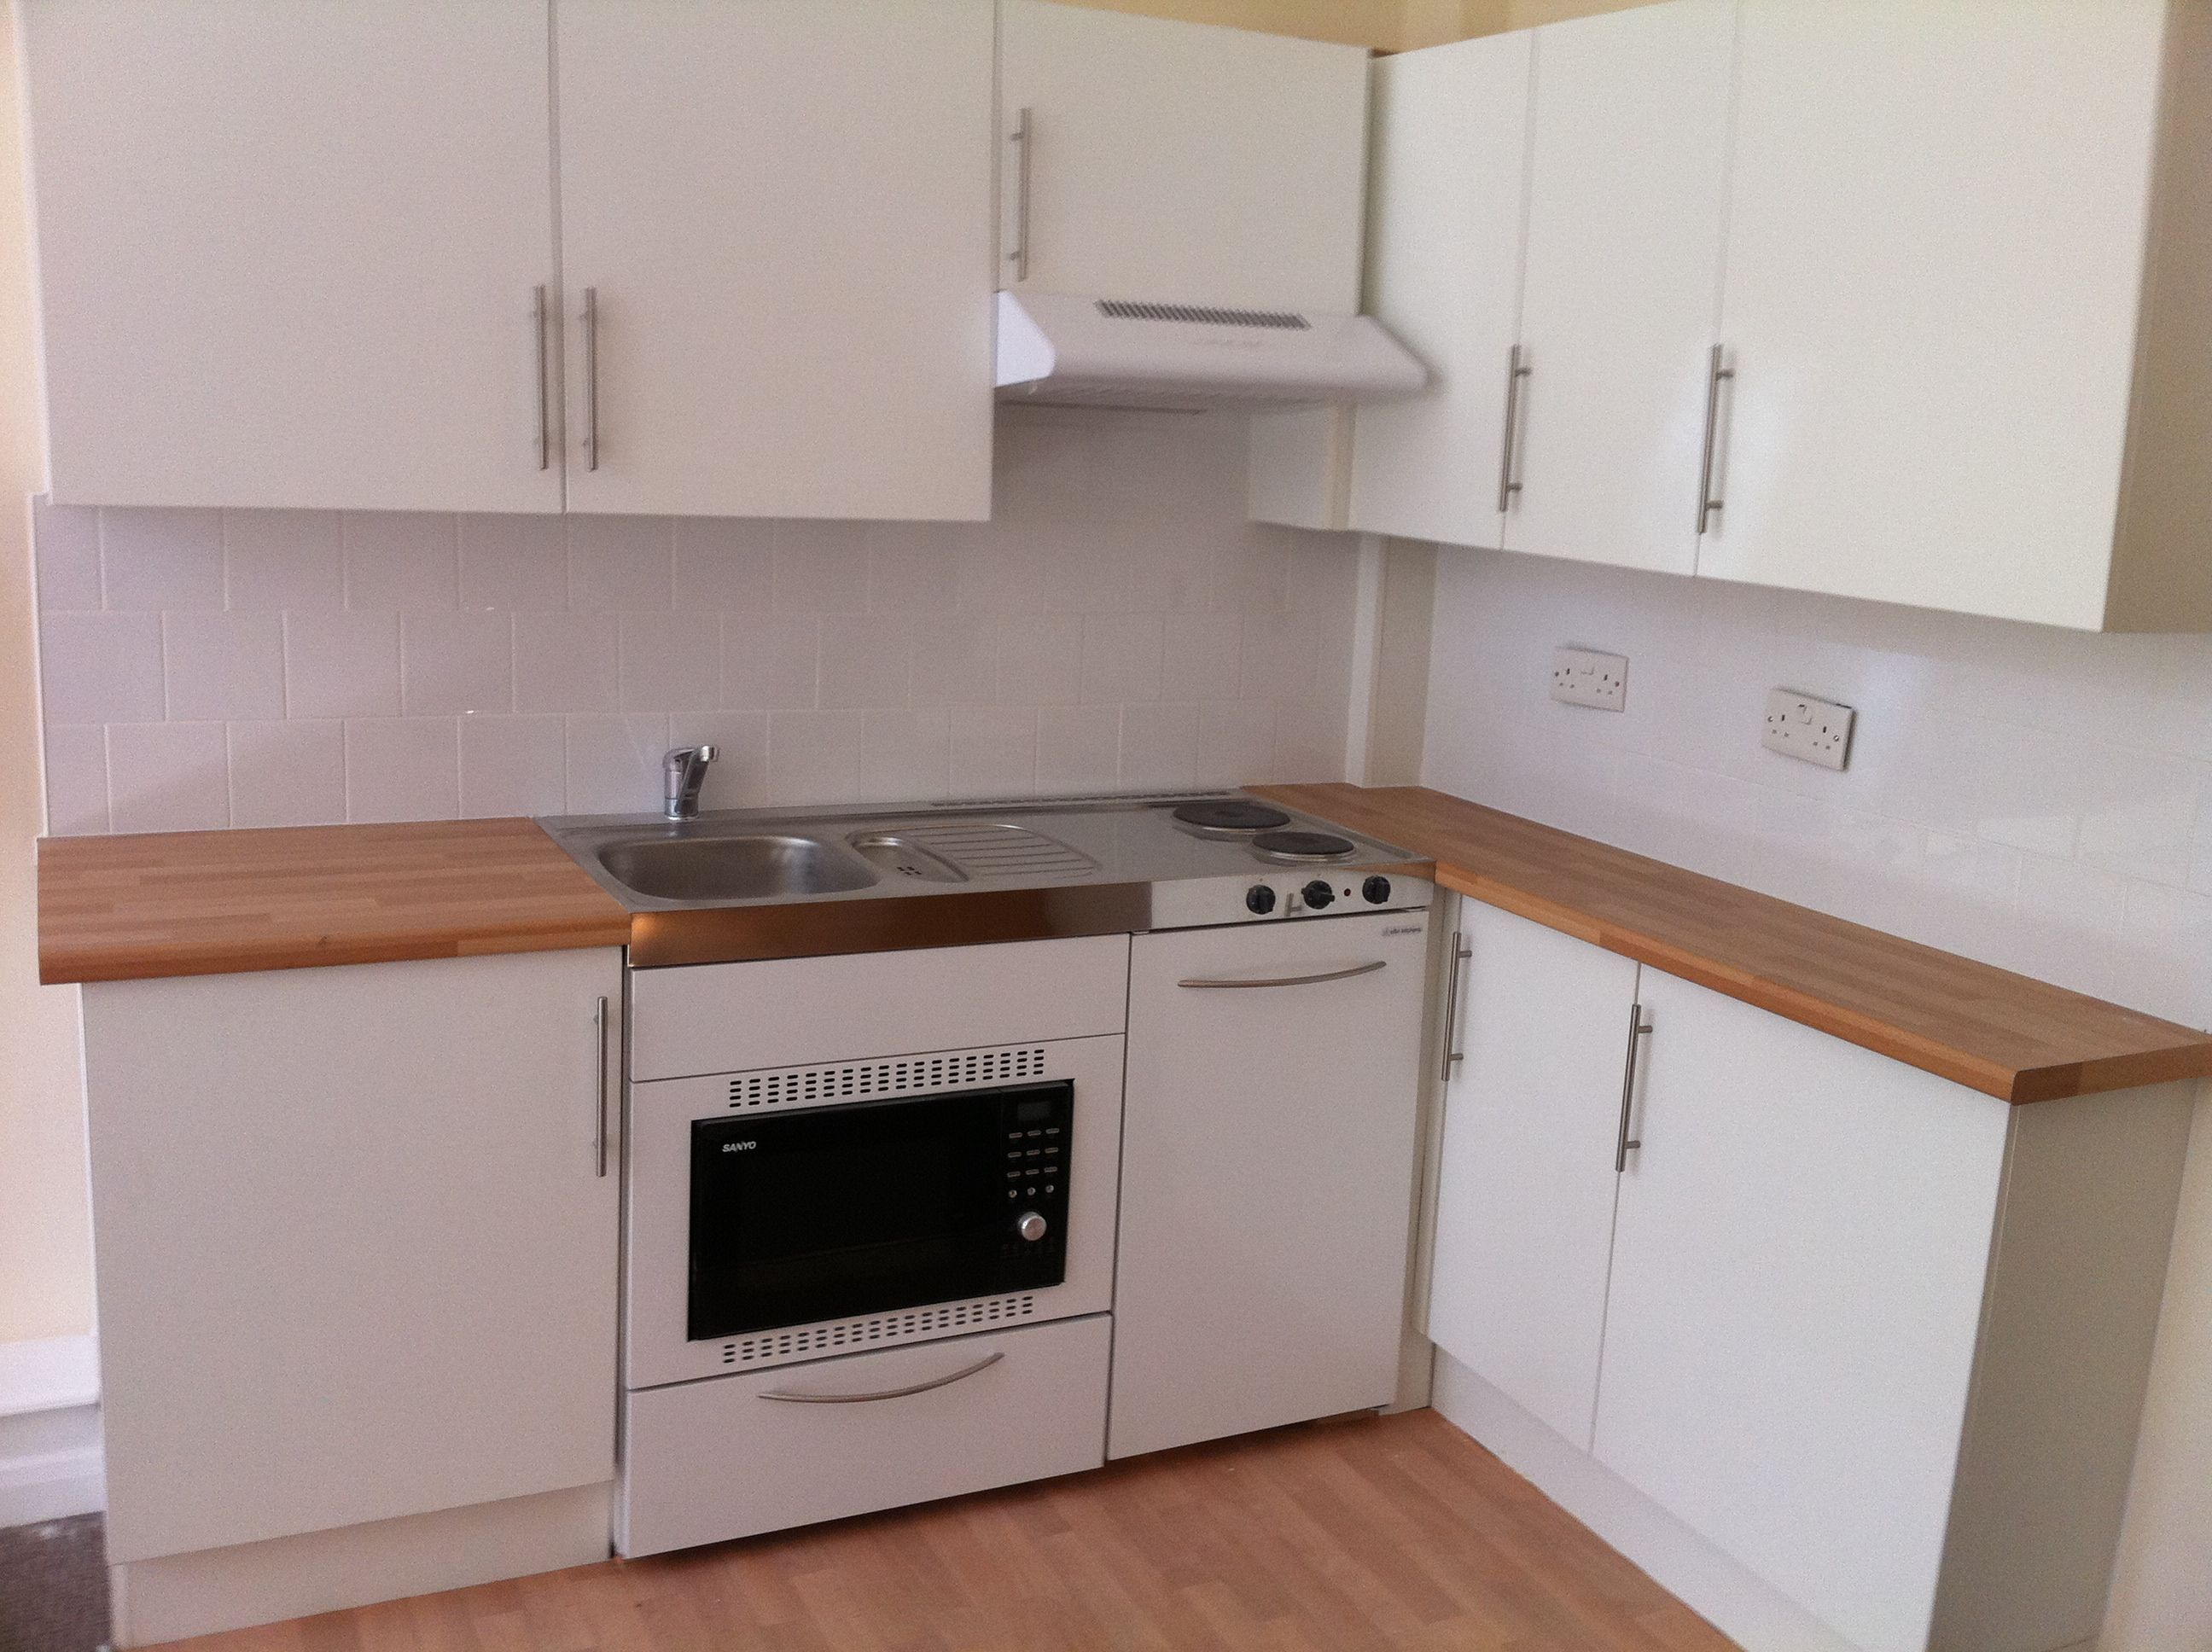 Beautiful Elfin mini kitchen ready for us in a studio apartment in